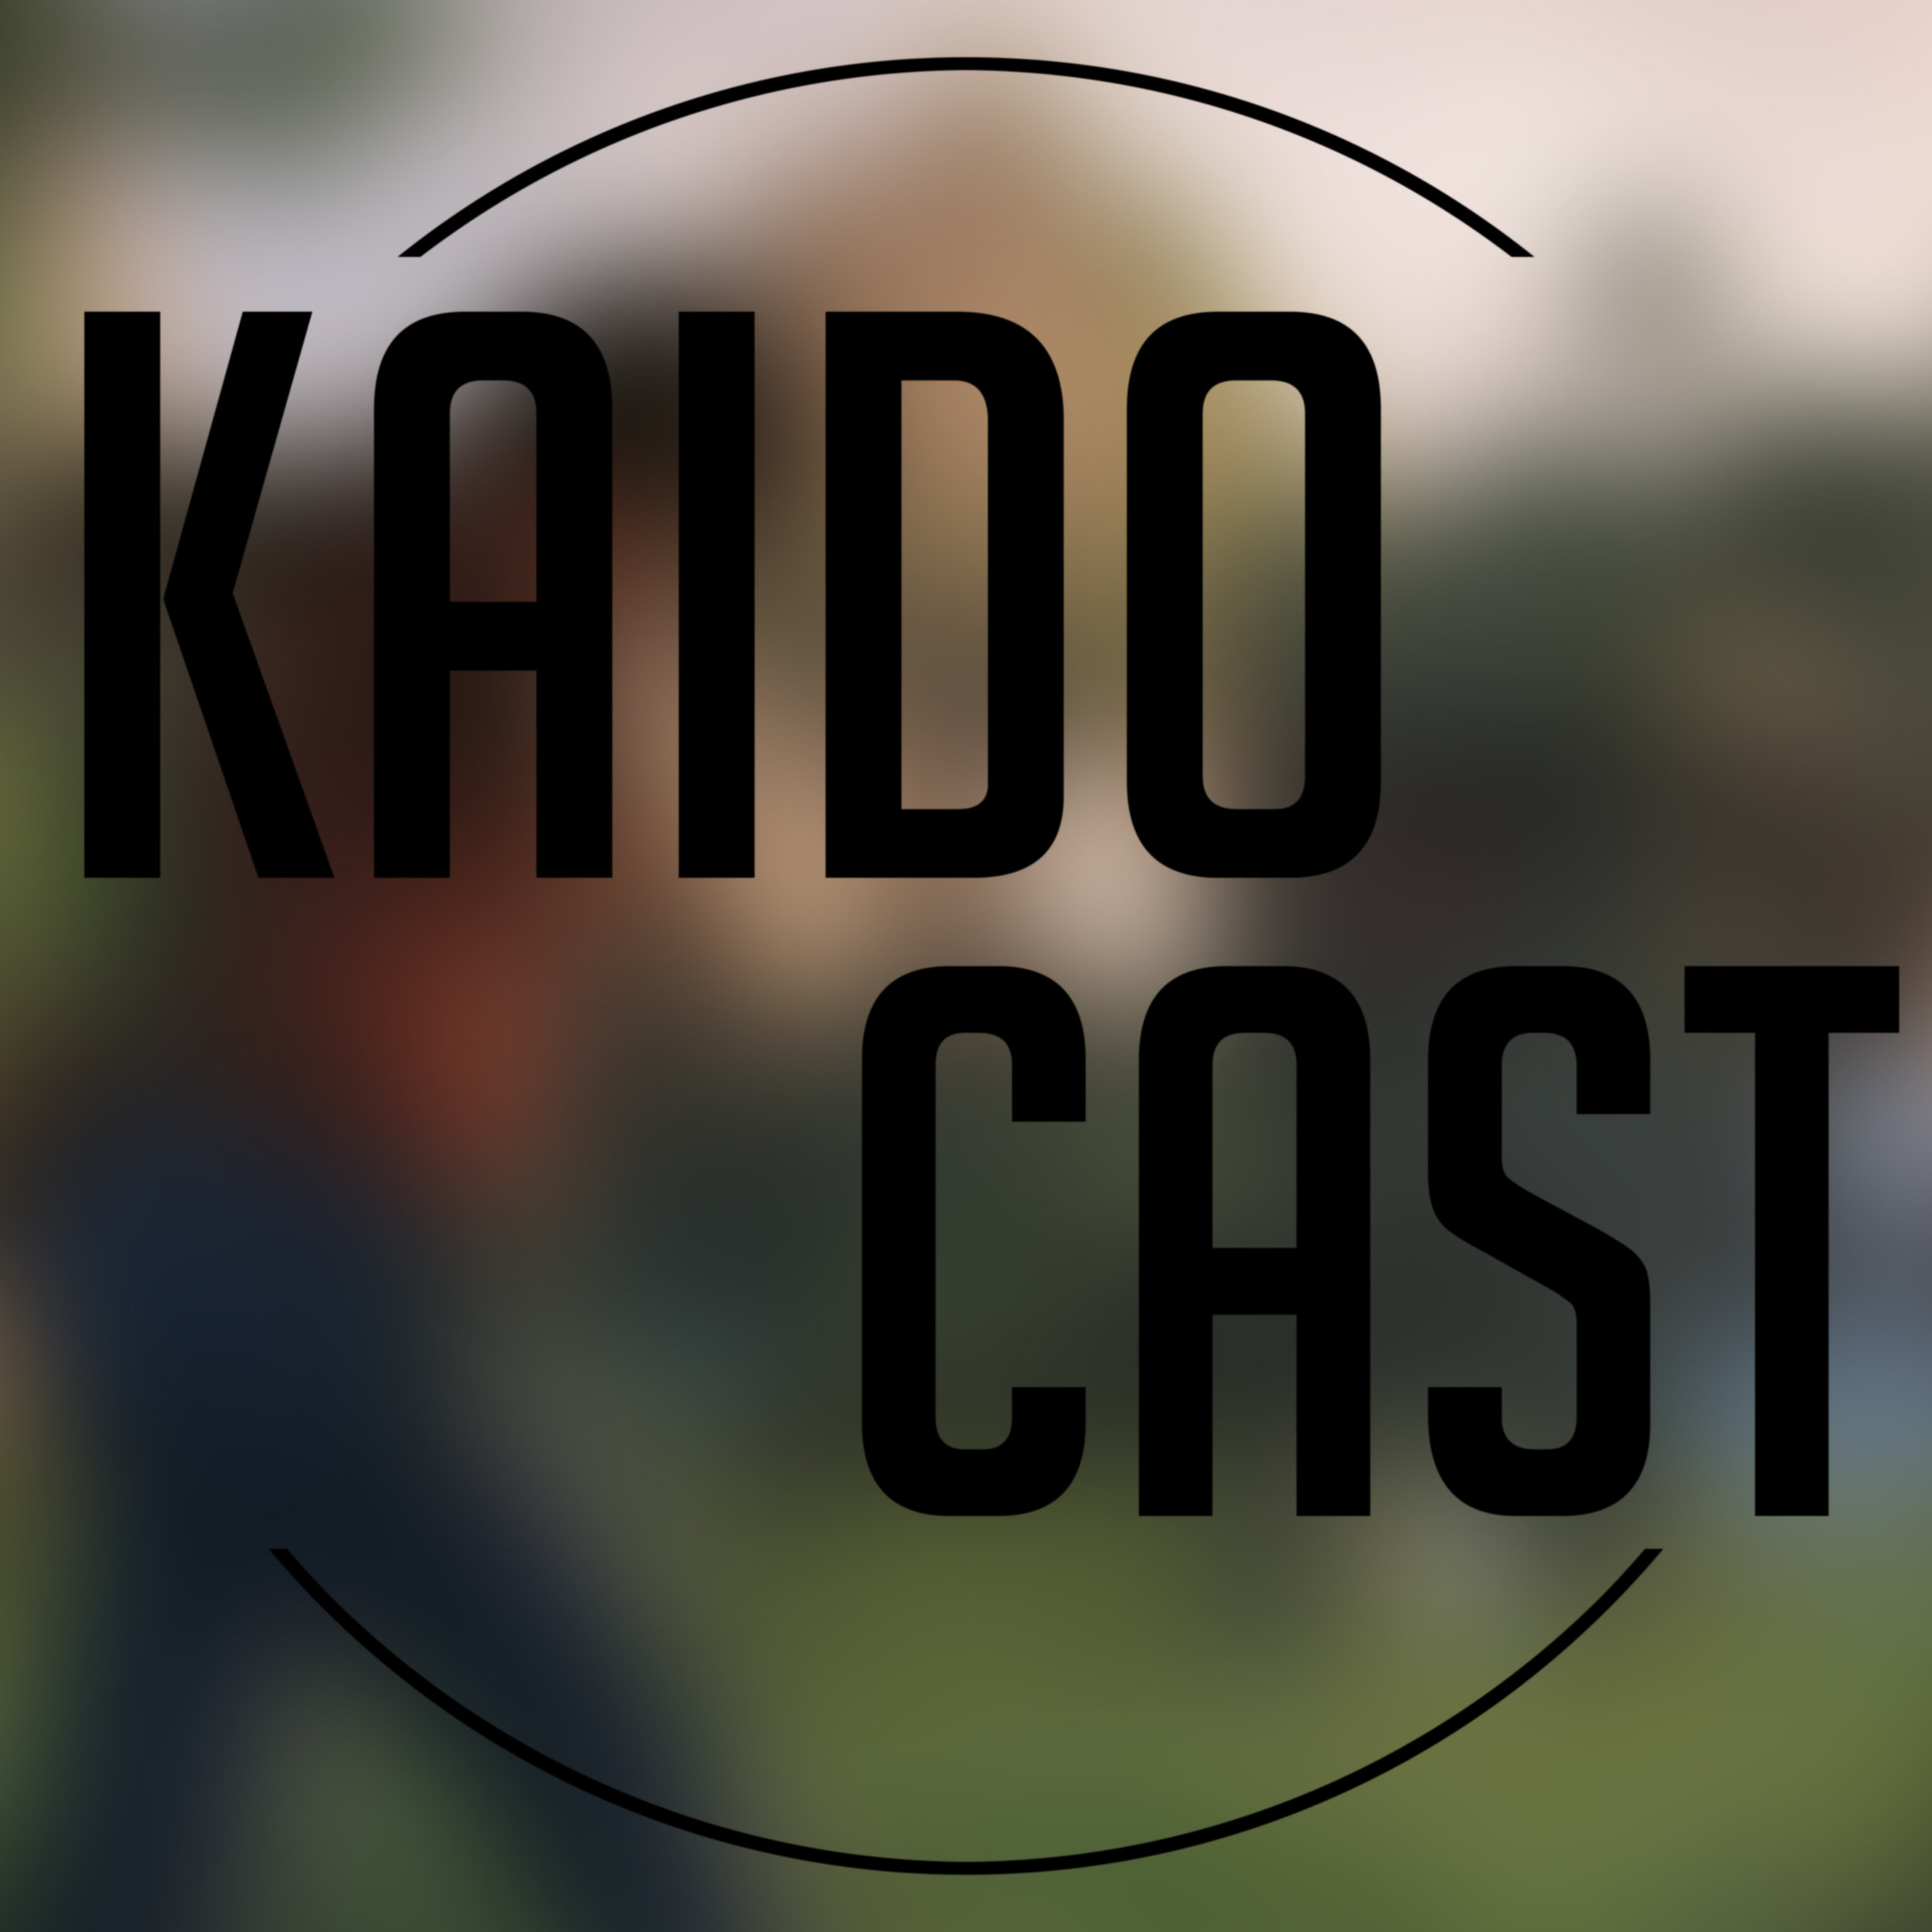 KAIDO Cast 14 - KAIDO Express - We're down a man, but this allows Dave and Zac to achieve a record time this episode. All aboard for Yakuza, Snakes and Time commitment!